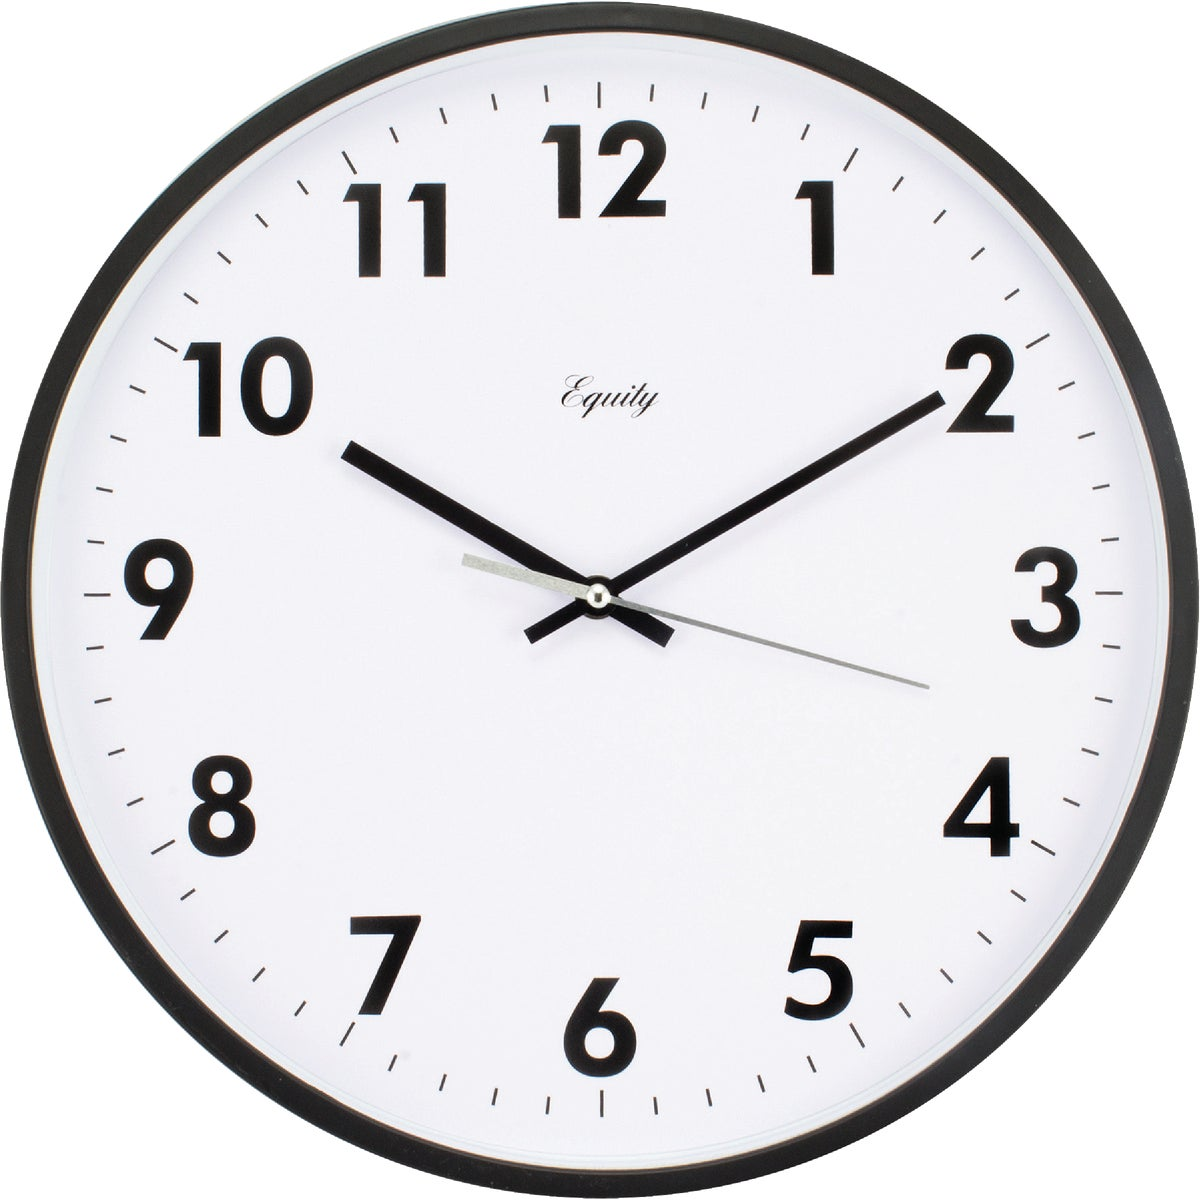 "13.5"" QUARTZ WALL CLOCK - 3938GG by Geneva Clock Company"